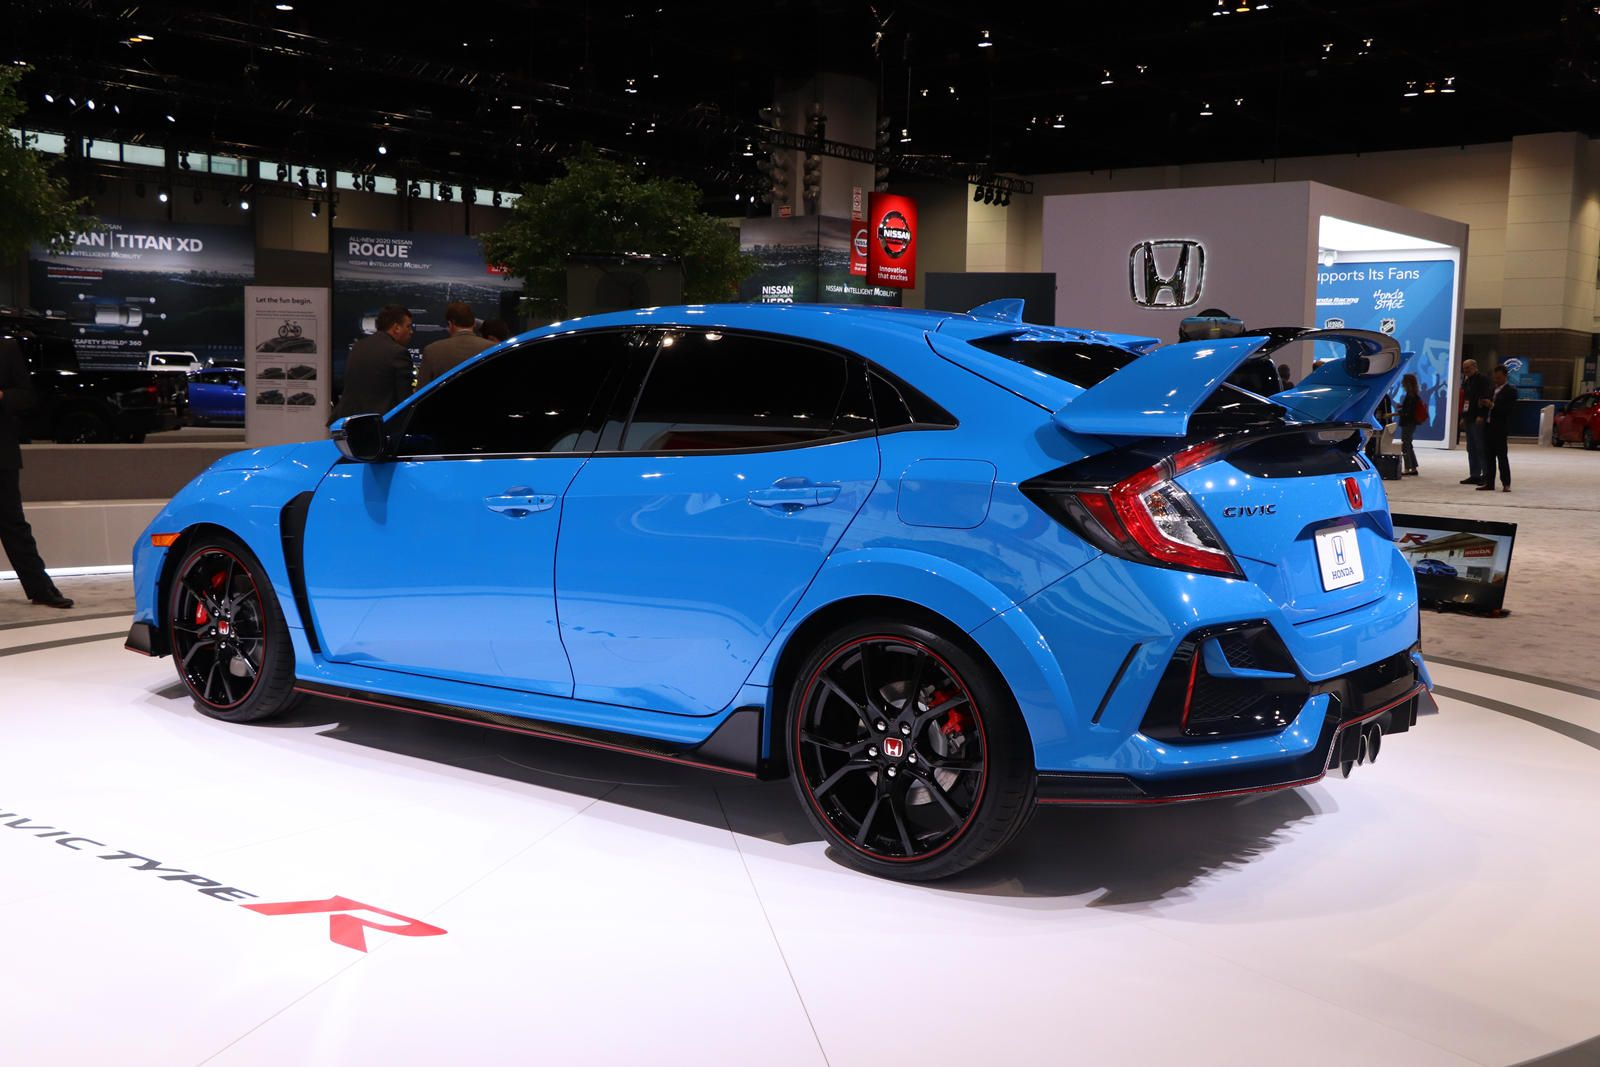 2020 Honda Civic Type R Arrives In Chicago With Outrageous New Color Carbuzz In 2020 Honda Civic Type R Honda Civic Honda Civic Hatchback